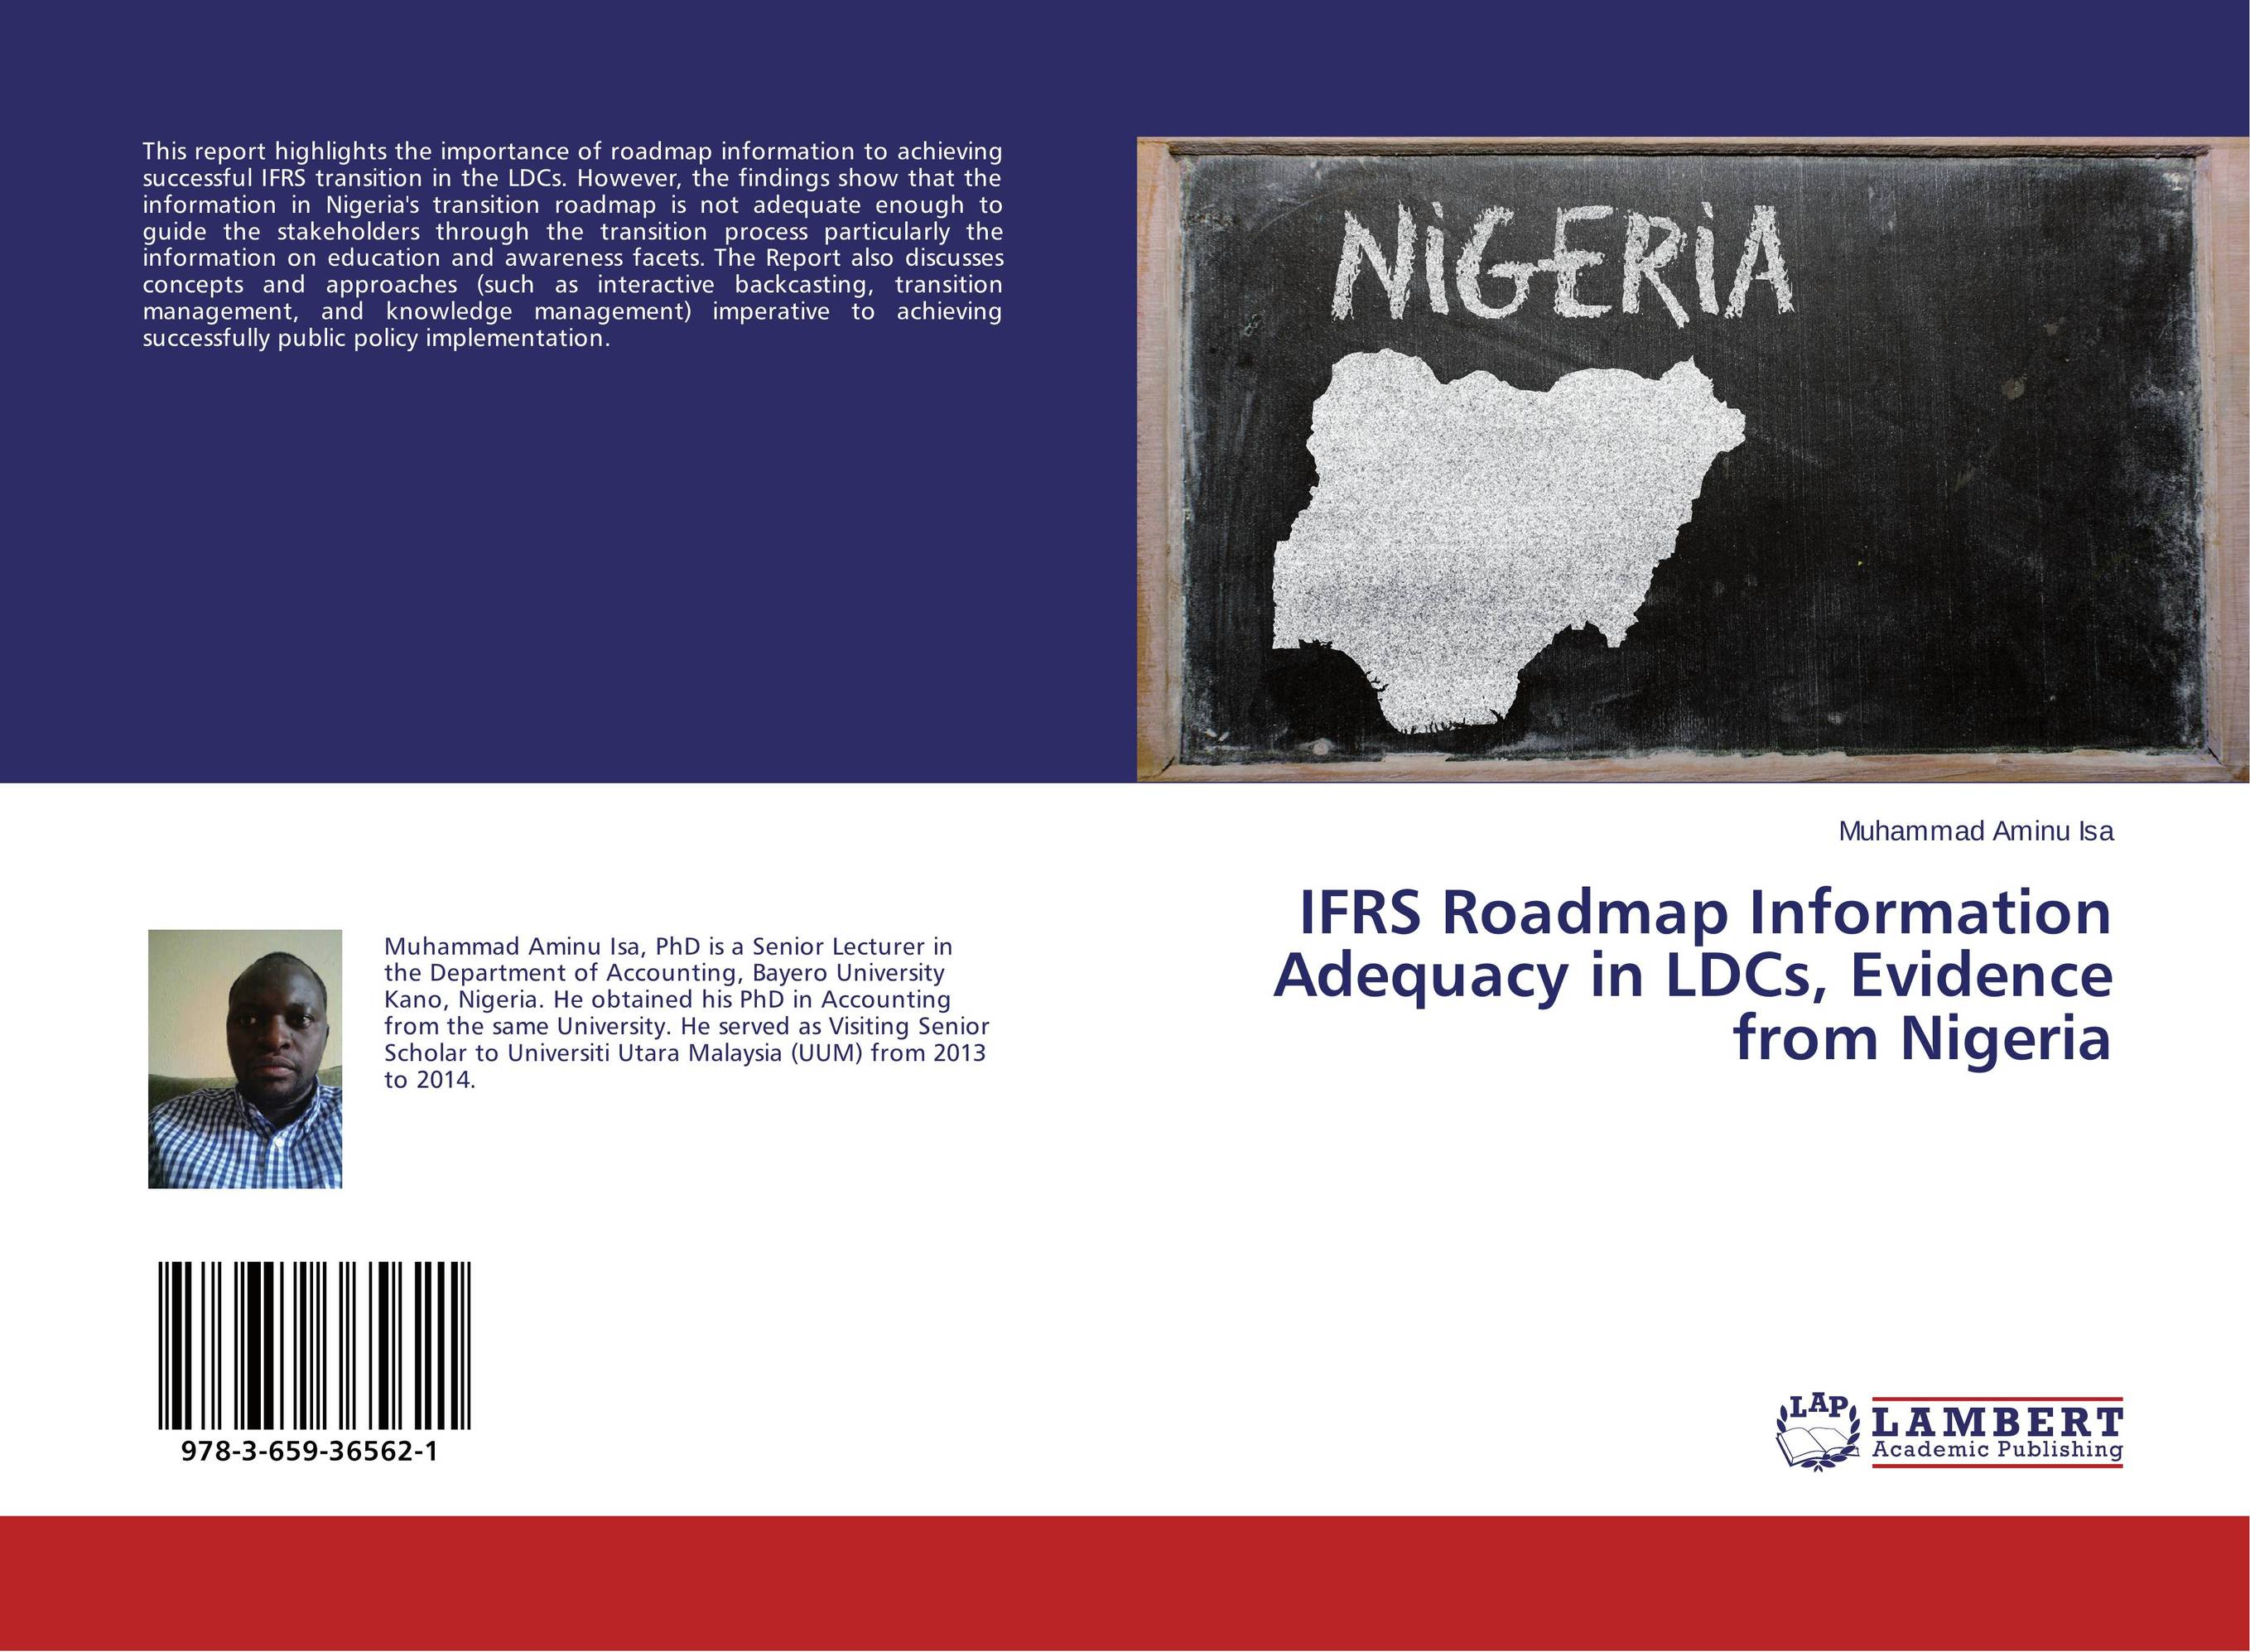 IFRS Roadmap Information Adequacy in LDCs, Evidence from Nigeria kenneth rosen d investing in income properties the big six formula for achieving wealth in real estate